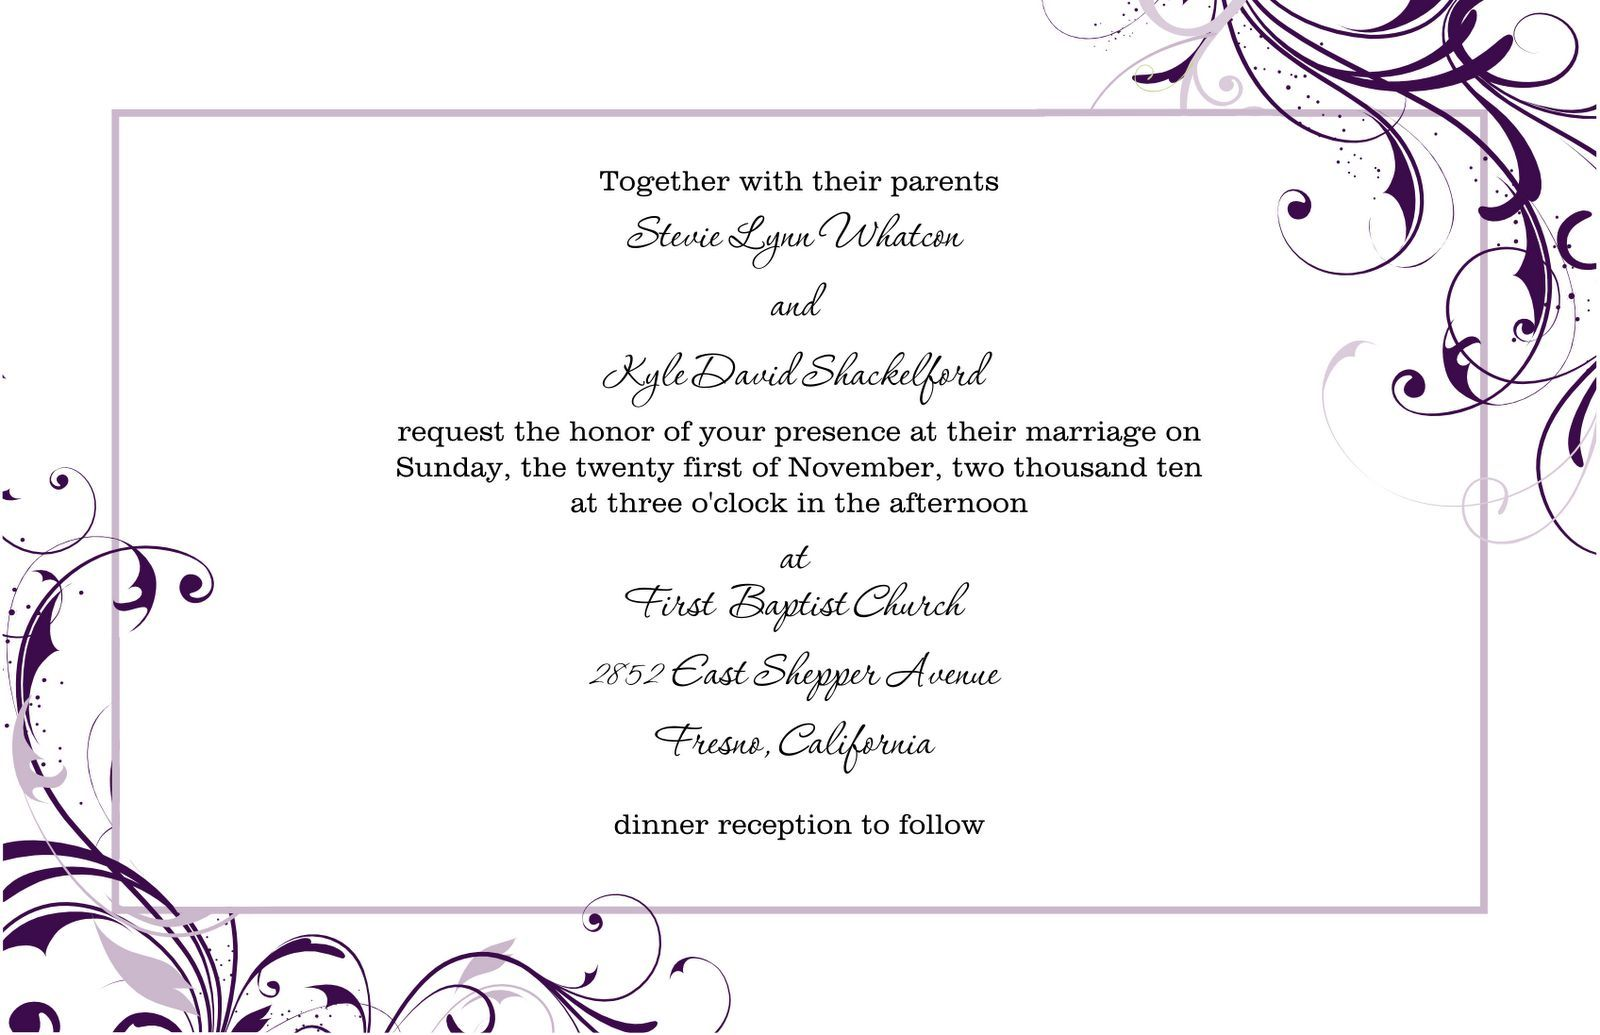 Free blank wedding invitation templates for microsoft word wedding free blank wedding invitation templates for microsoft word stopboris Choice Image